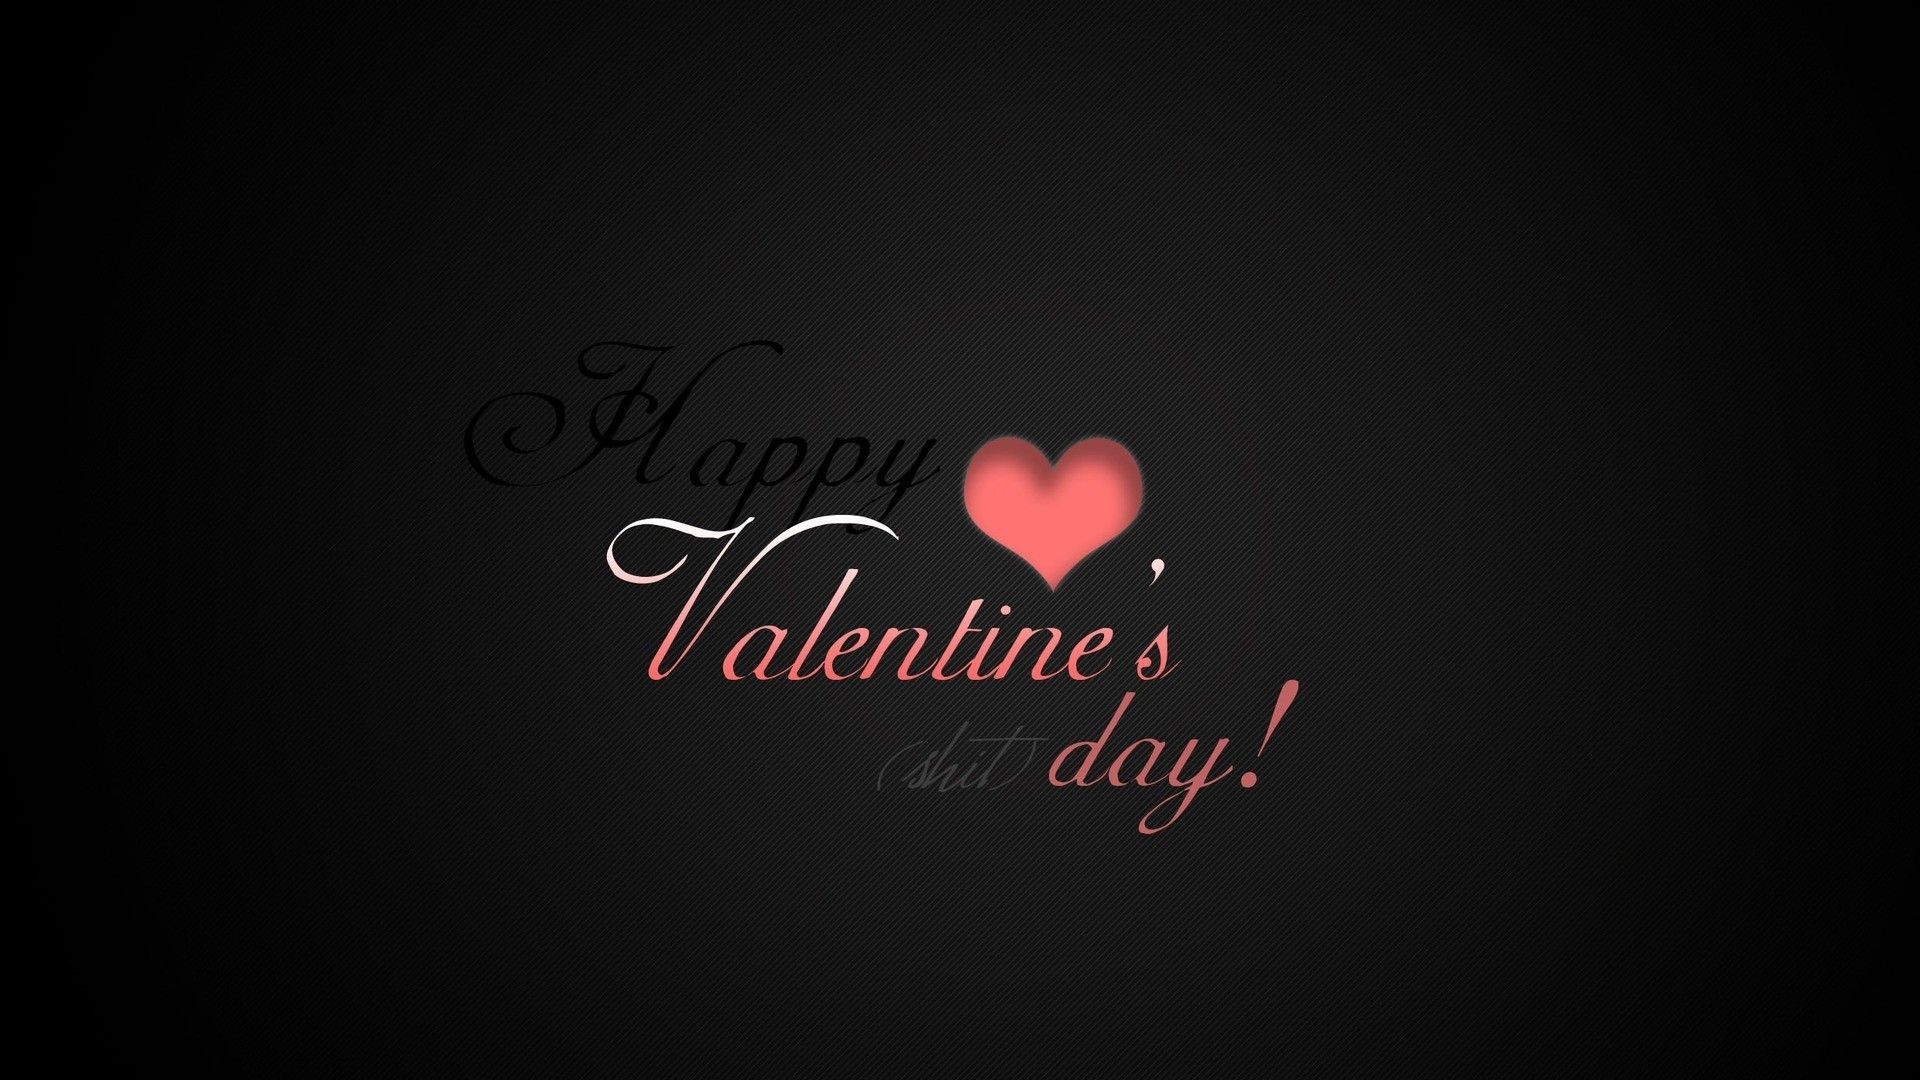 Happy Valentines Day Funny Quotes Quotesgram Valentine Quotes Valentine S Day Quotes Happy Valentine Day Quotes